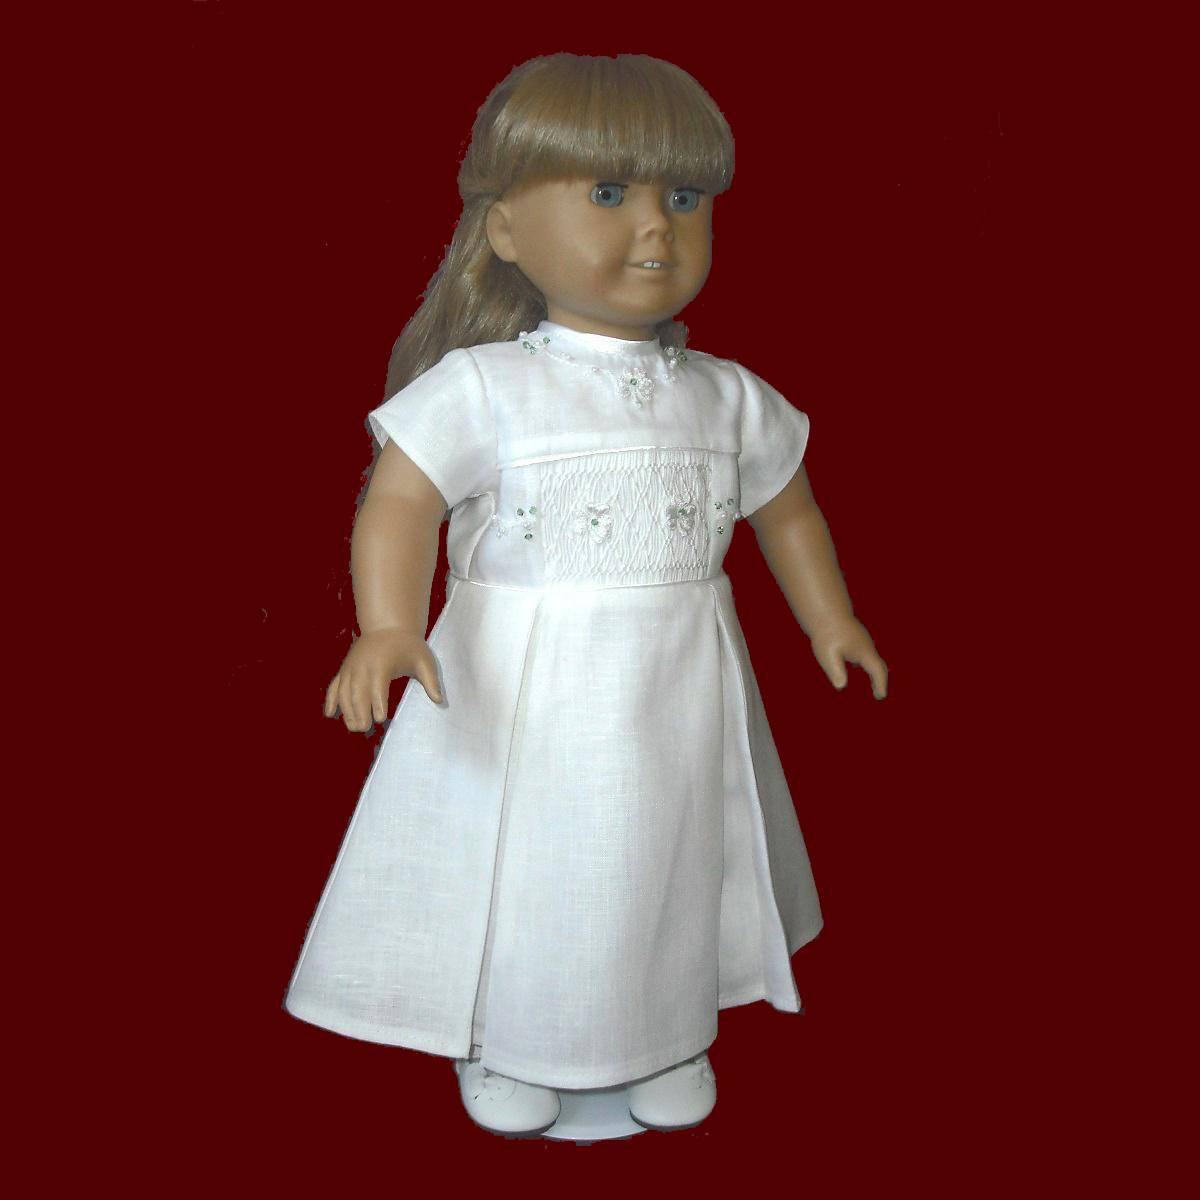 Irish American Girl Communion Doll Dress With Hand Smocked Insert